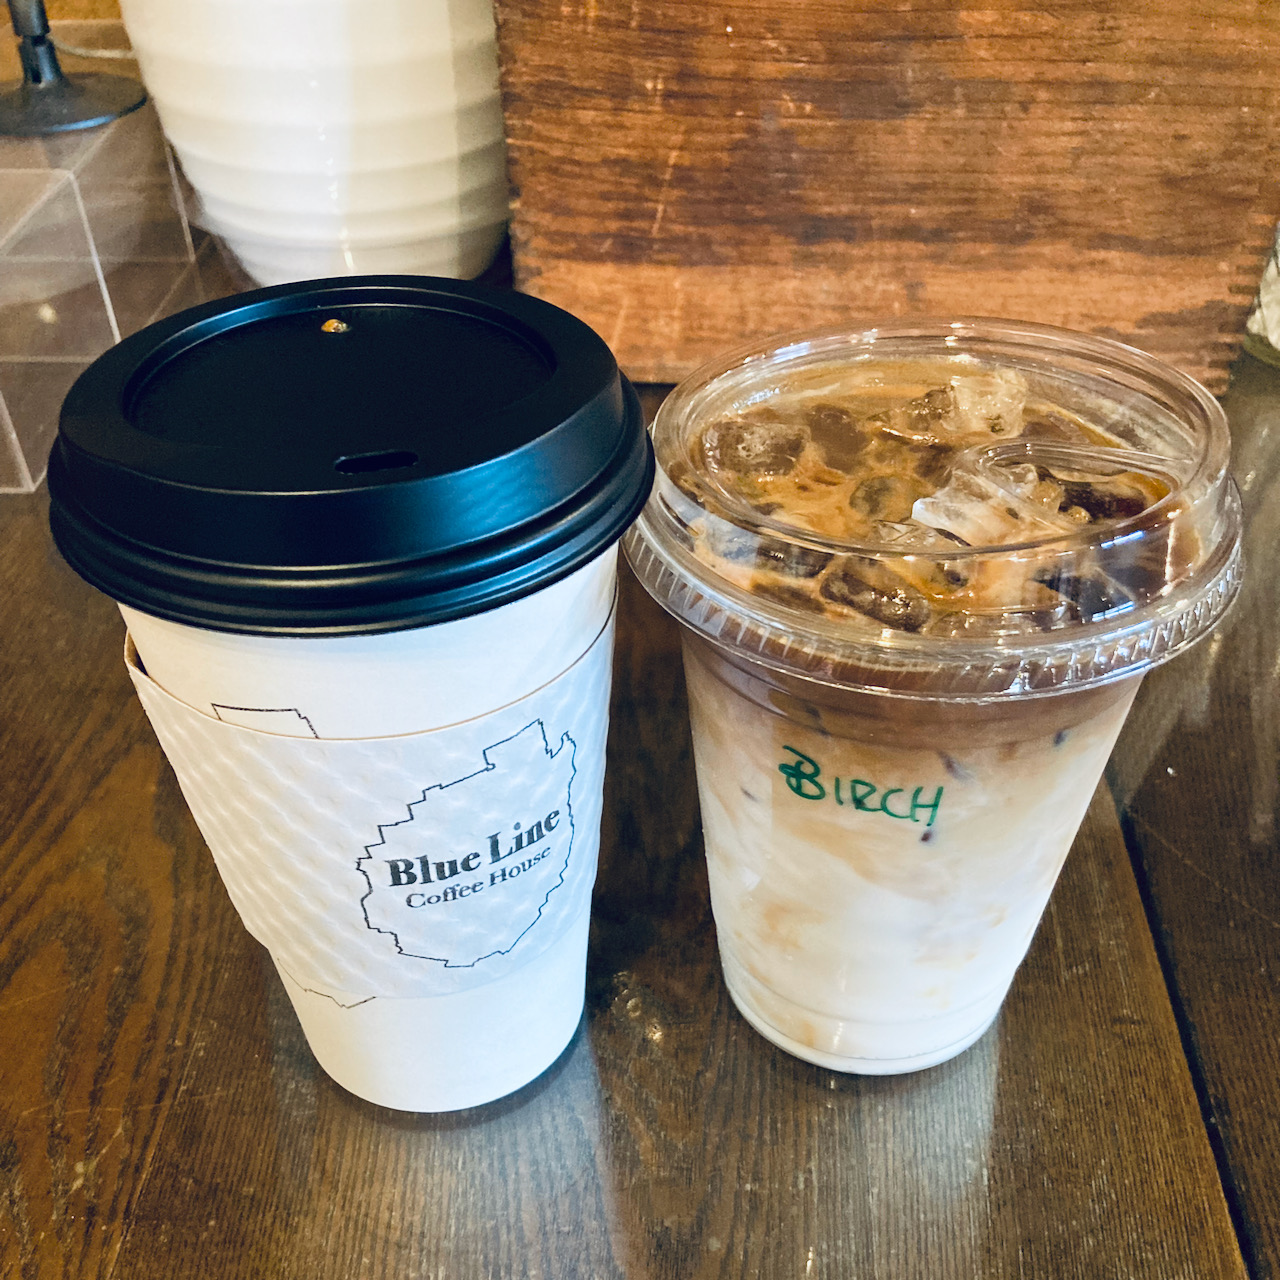 Cup of hot coffee on left and cup of iced coffee on right.